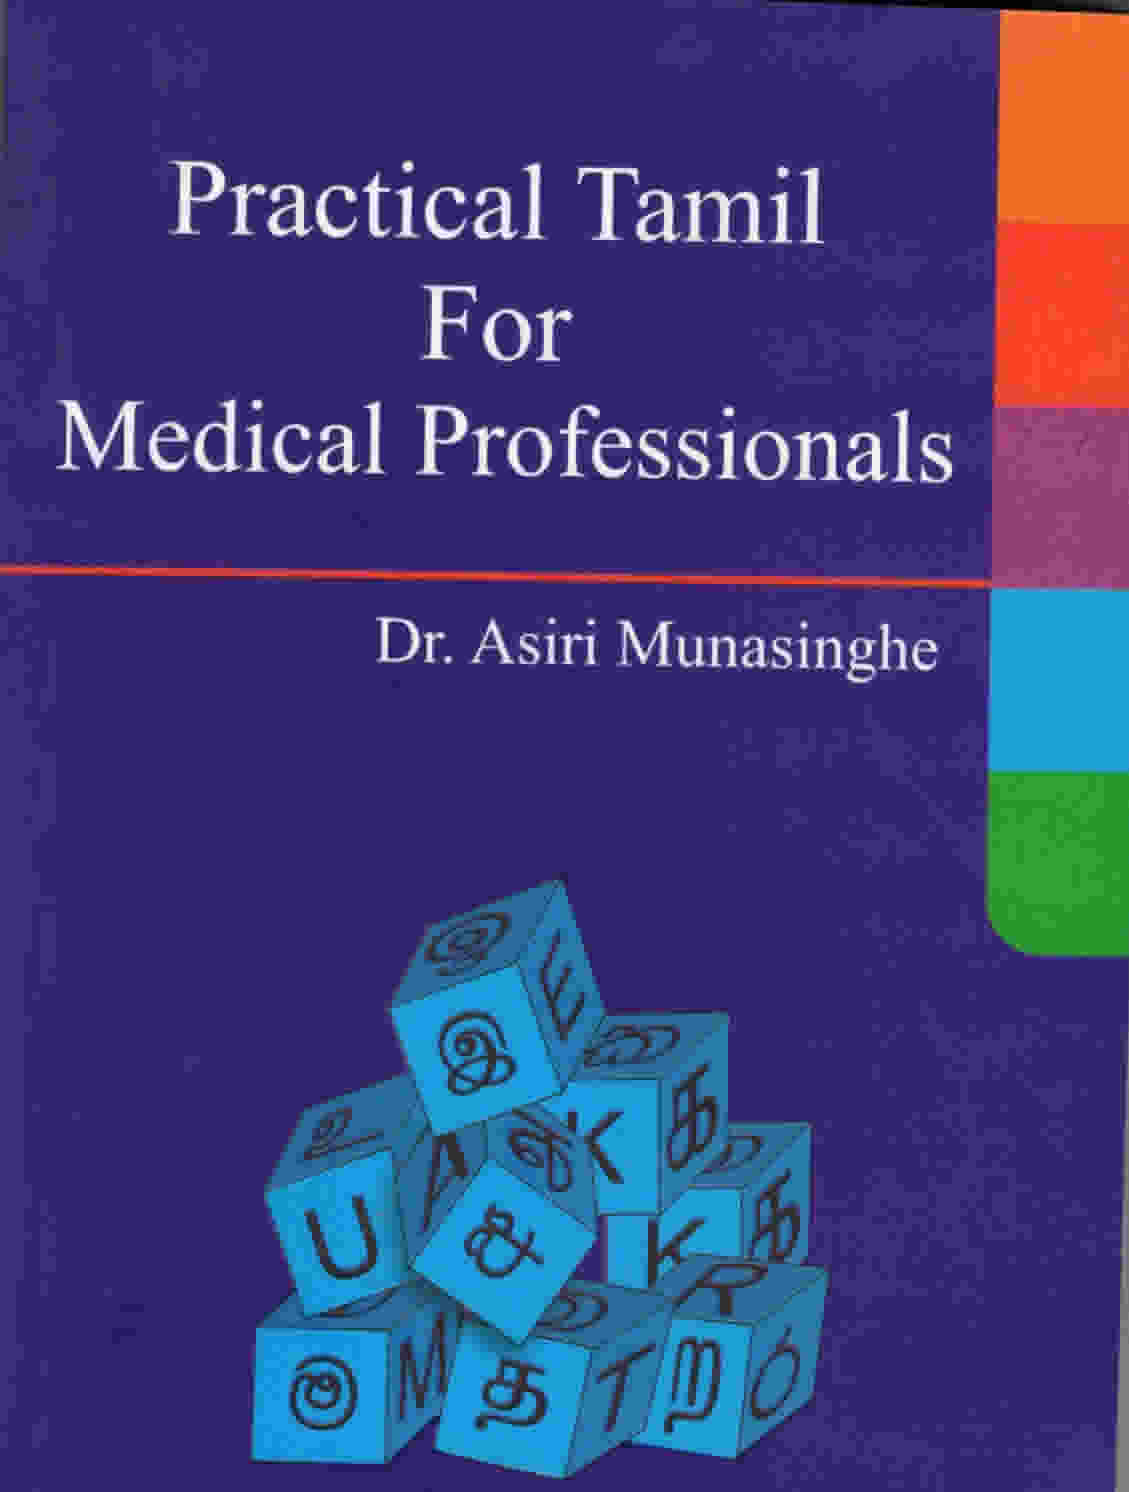 Practical Tamil for Medical Professionals